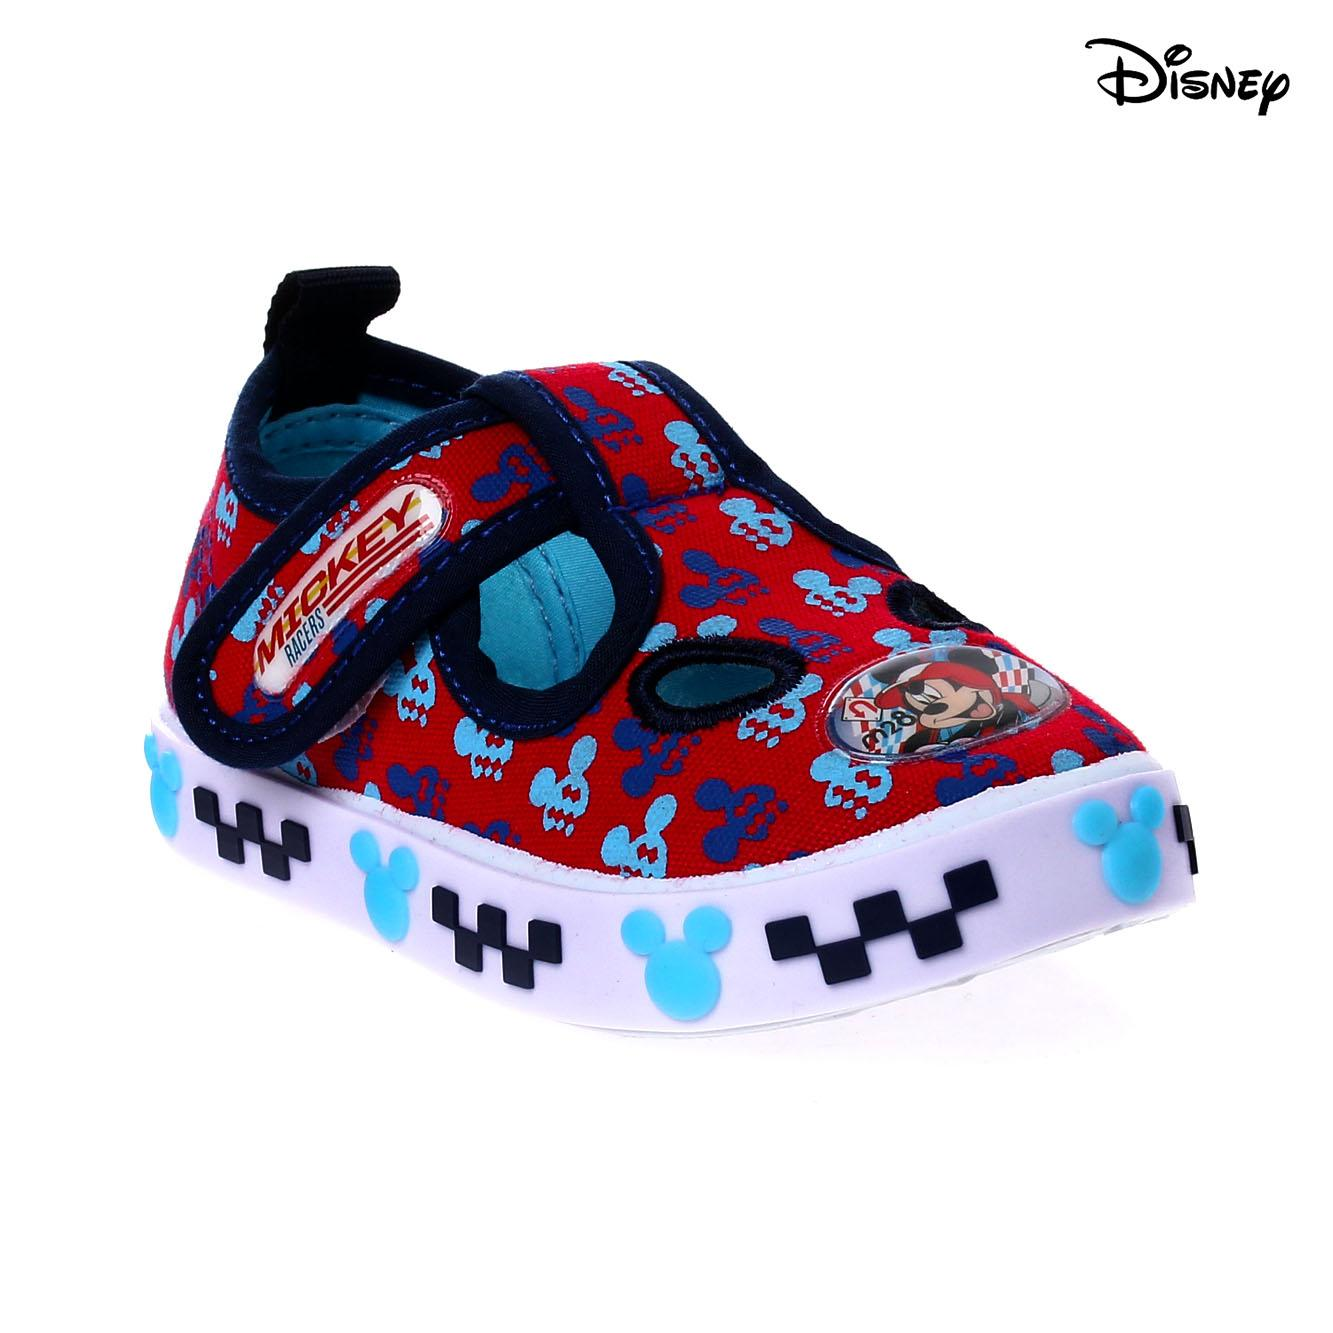 9bacd9e917c Baby Shoes for Boys for sale - Boys Shoes online brands